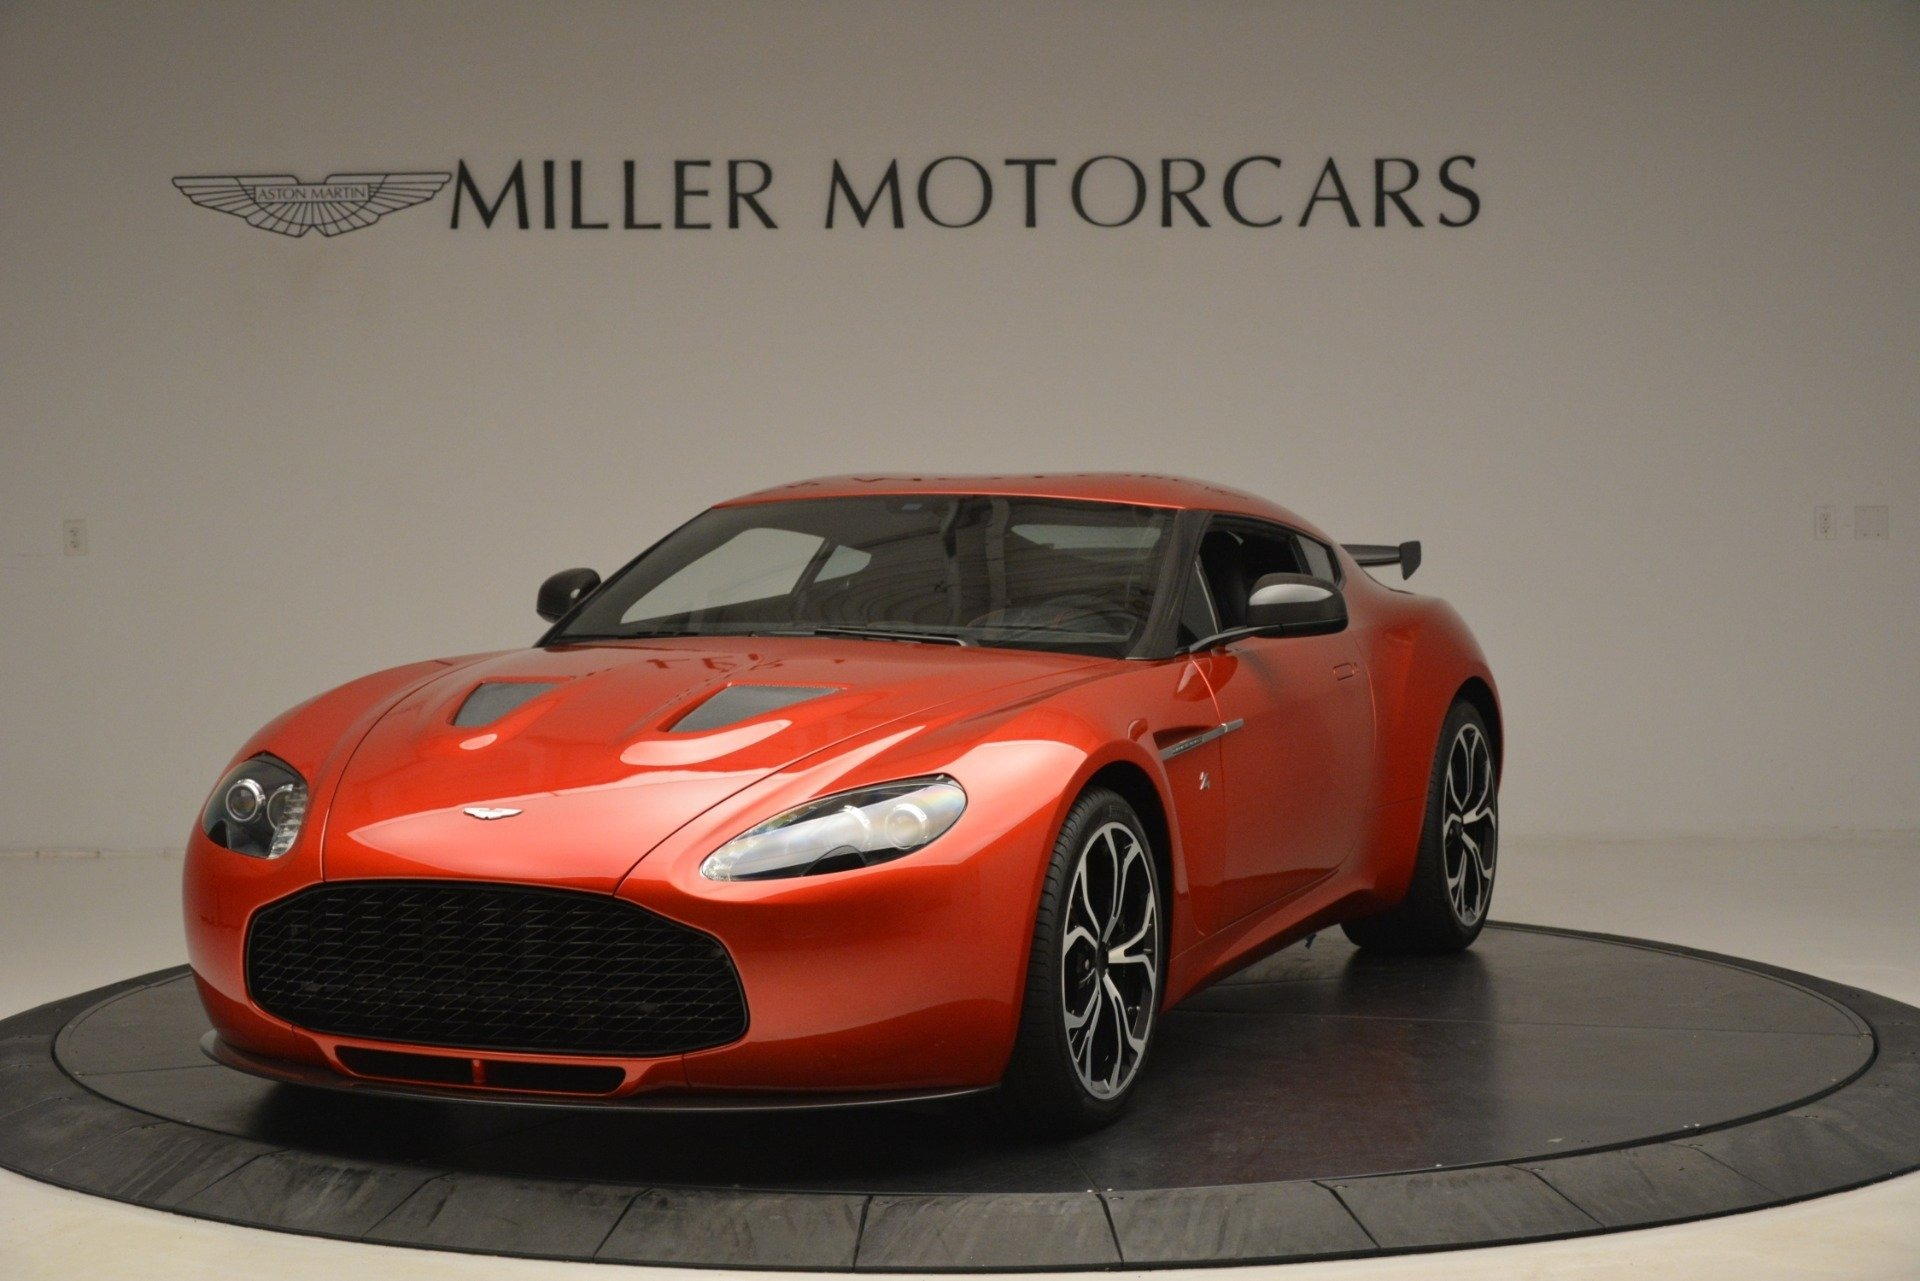 Used 2013 Aston Martin V12 Zagato Coupe for sale Sold at Alfa Romeo of Greenwich in Greenwich CT 06830 1